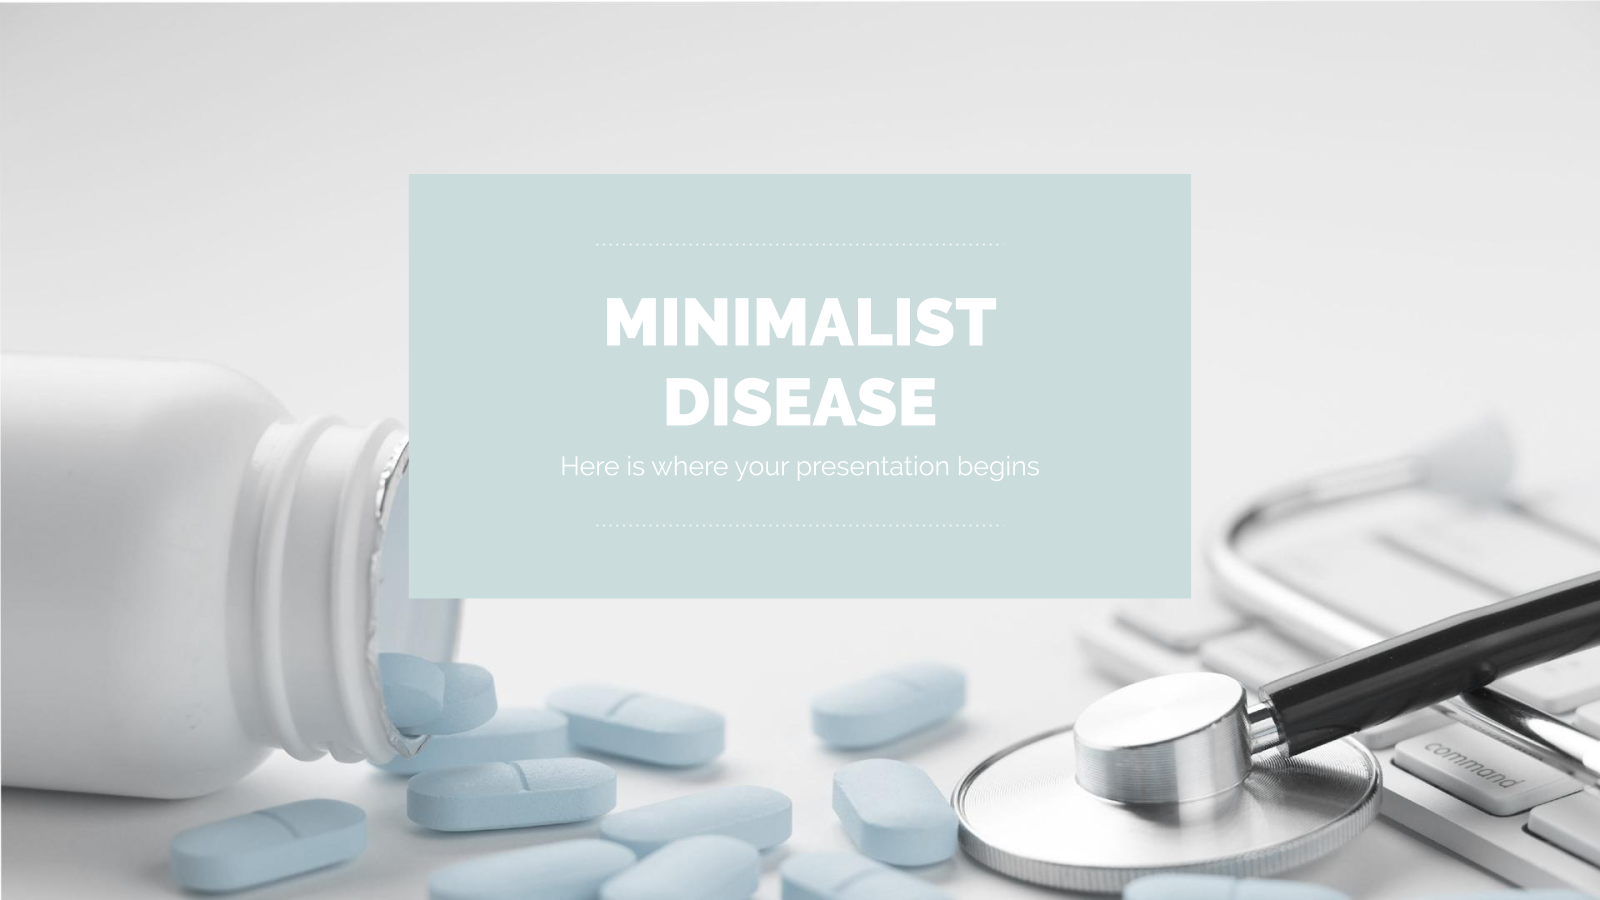 Minimalist Disease presentation template